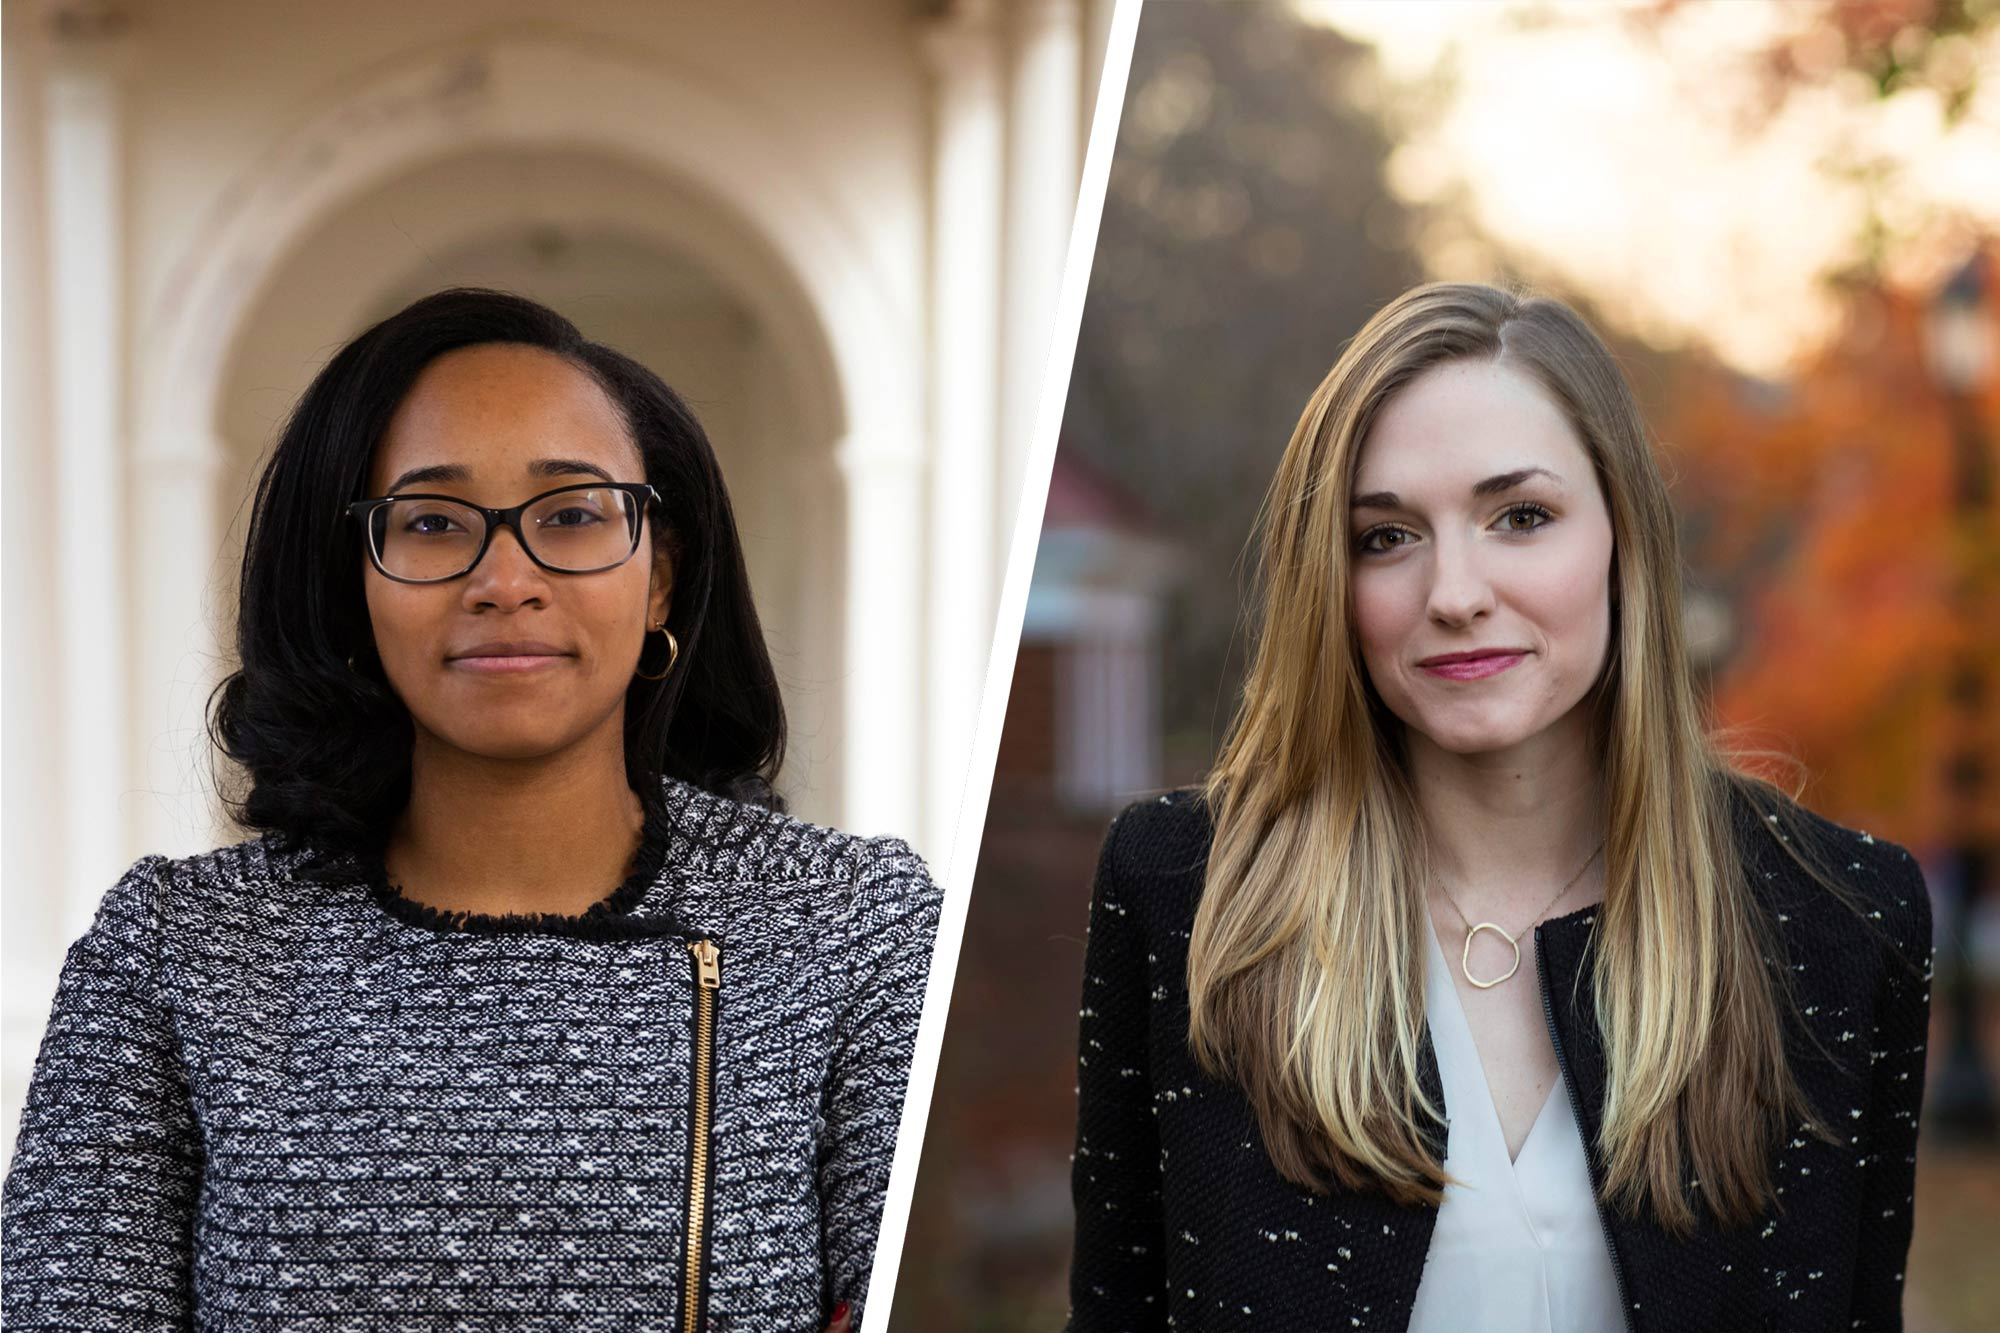 Aryn Frazier will pursue a Master of Philosophy degree in comparative politics and Lauren Jackson will pursue a Master of Philosophy degree in international relations, both at the University of Oxford, with their Rhodes Scholarships.